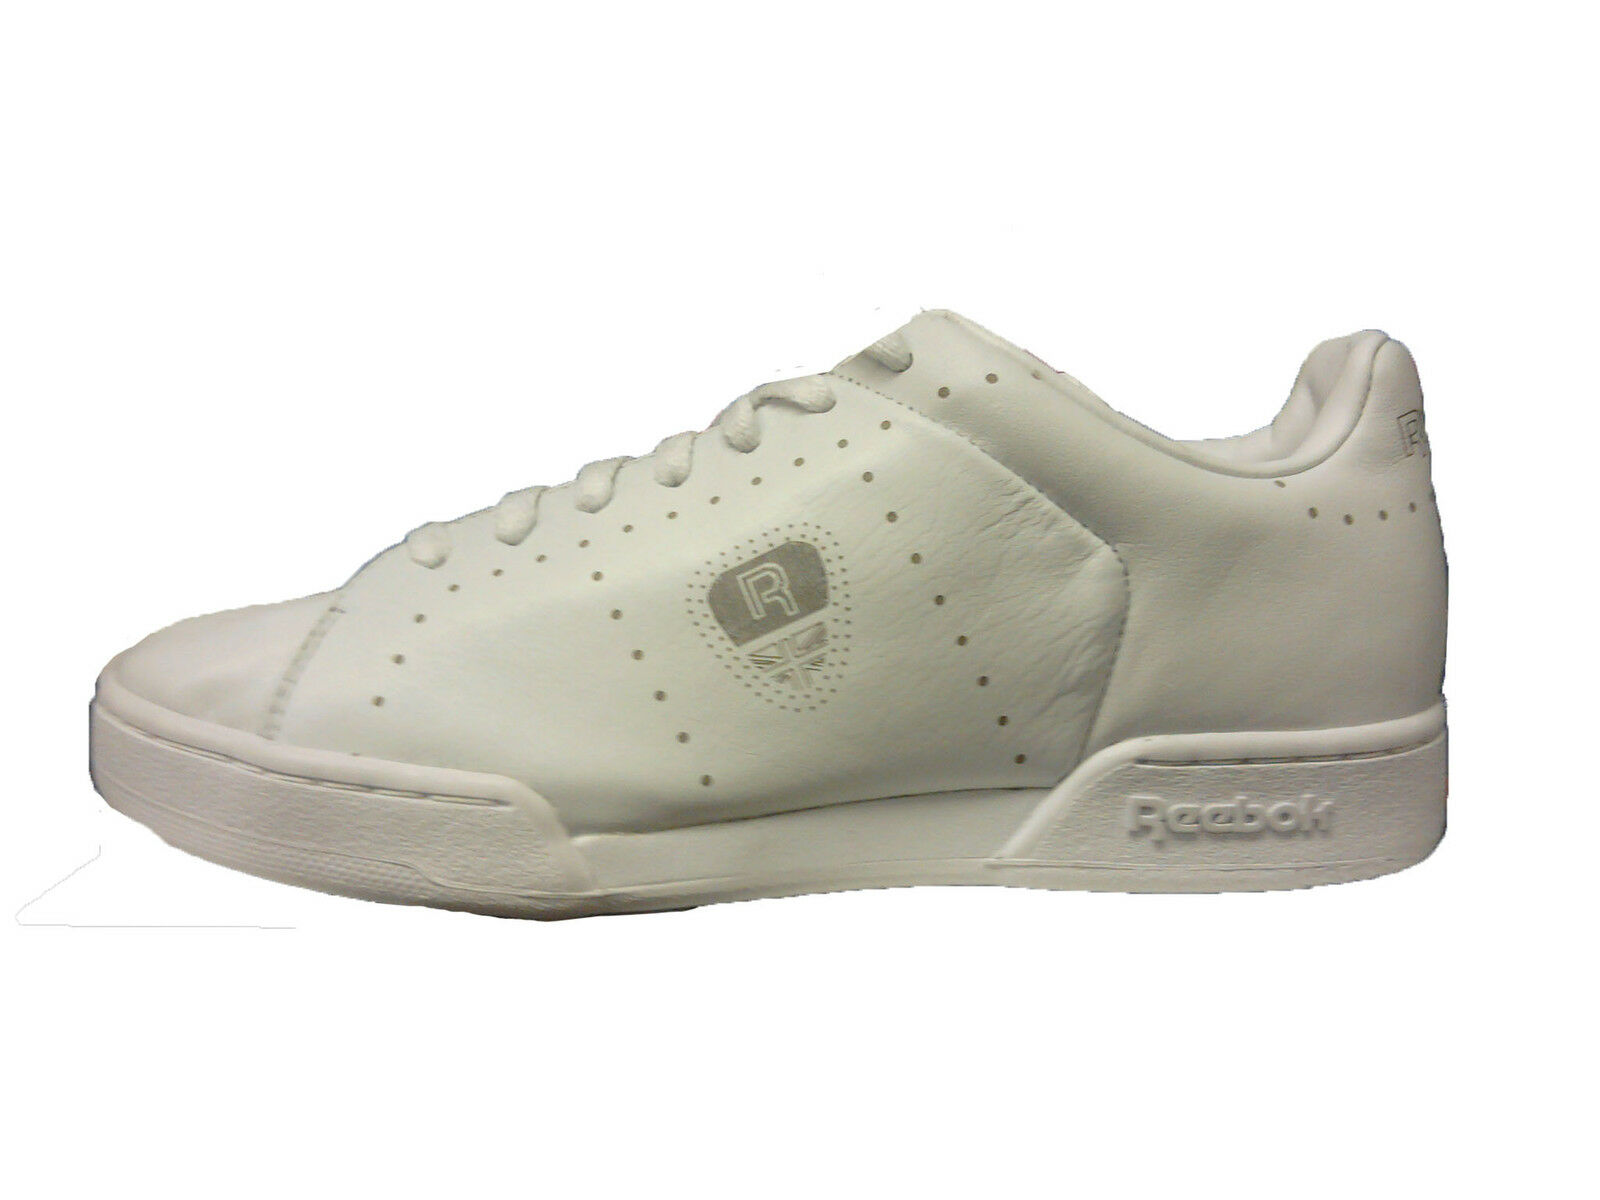 Reebok Uomo Shoe Npc ii Perf Perforated Classic White Tennis Shoe Sz 7.5 J19679